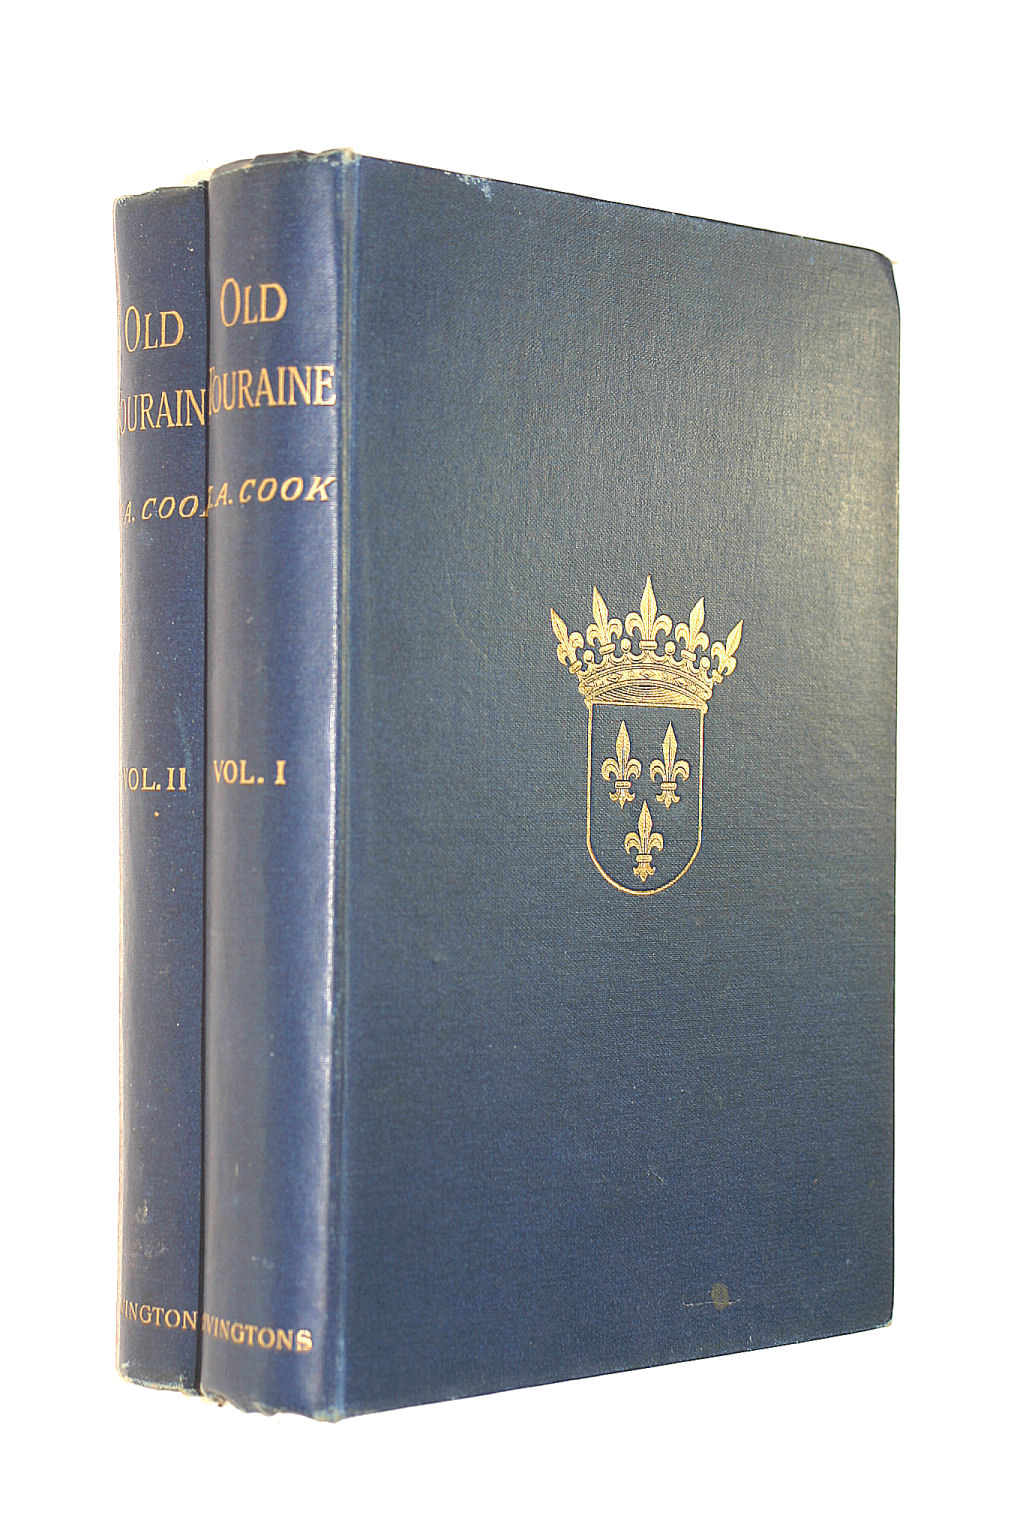 Image for Old Touraine : the Life and History of the Chateaux of the Loire / by Theodore Andrea Cook